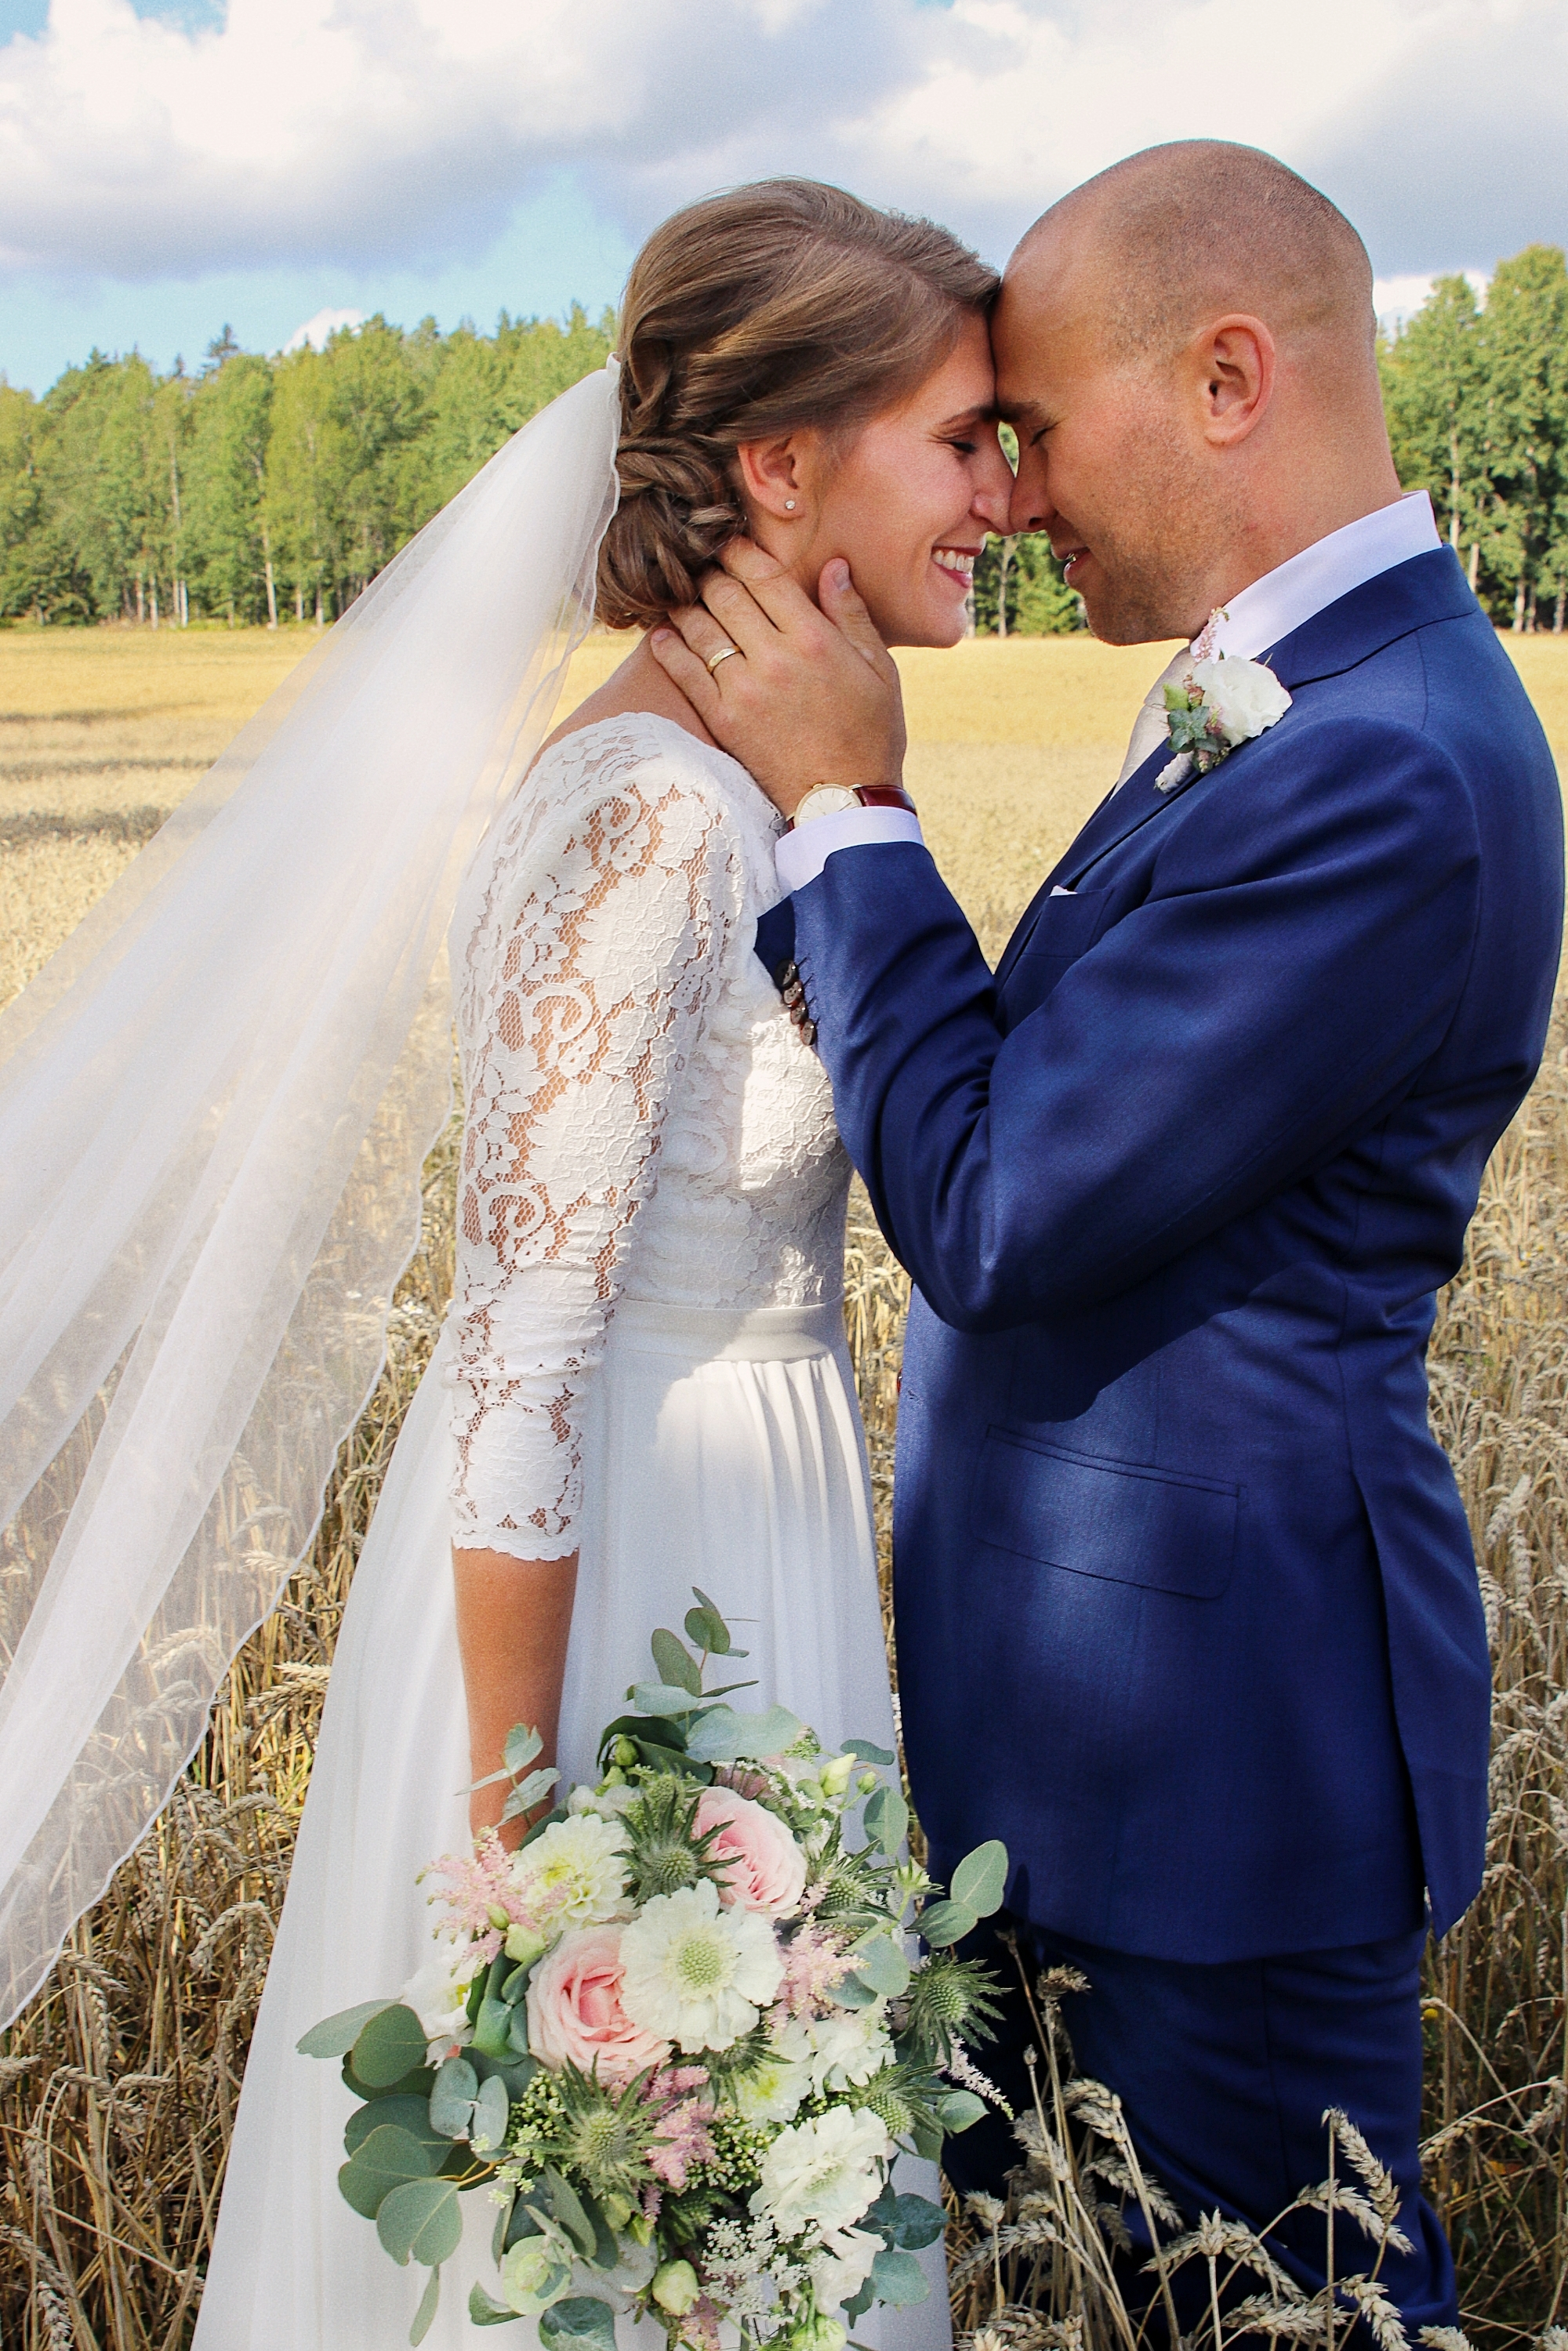 brollop wedding foto photo brud brudgum lantligt skandinaviskt bettna brudpar